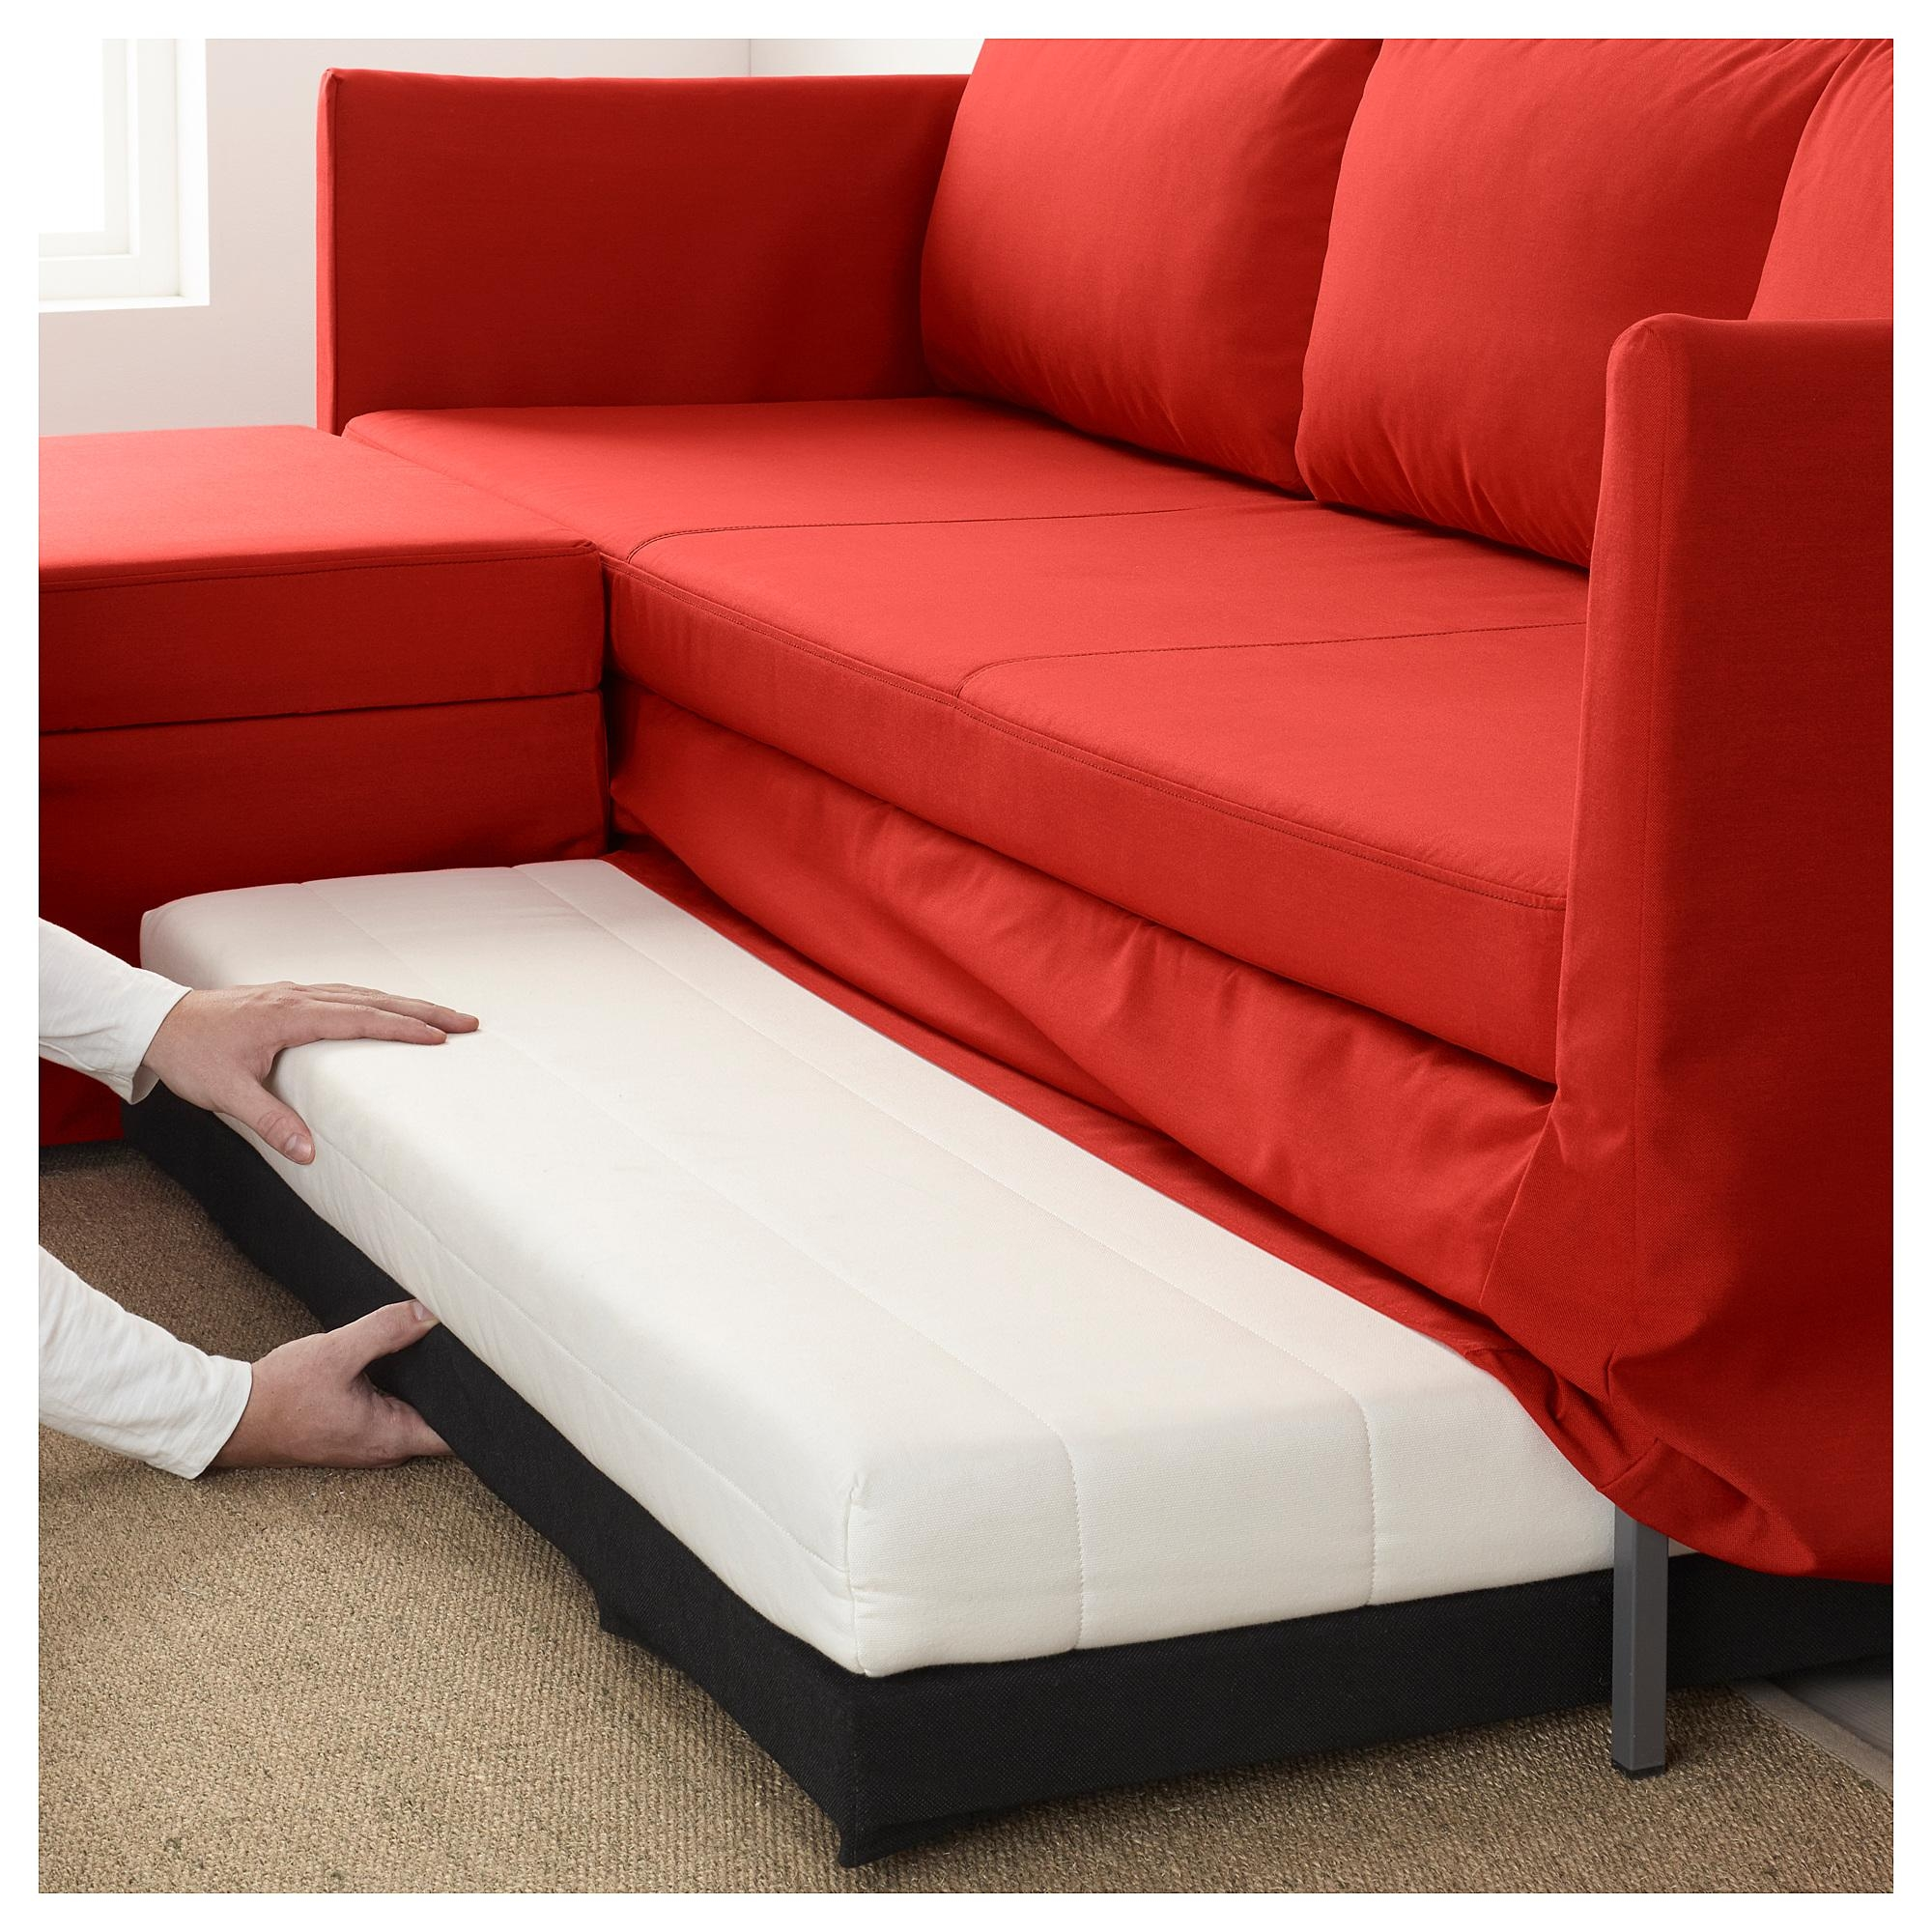 Red Sofa 20 43 Choices Of Red Sofa Beds Ikea Sofa Ideas